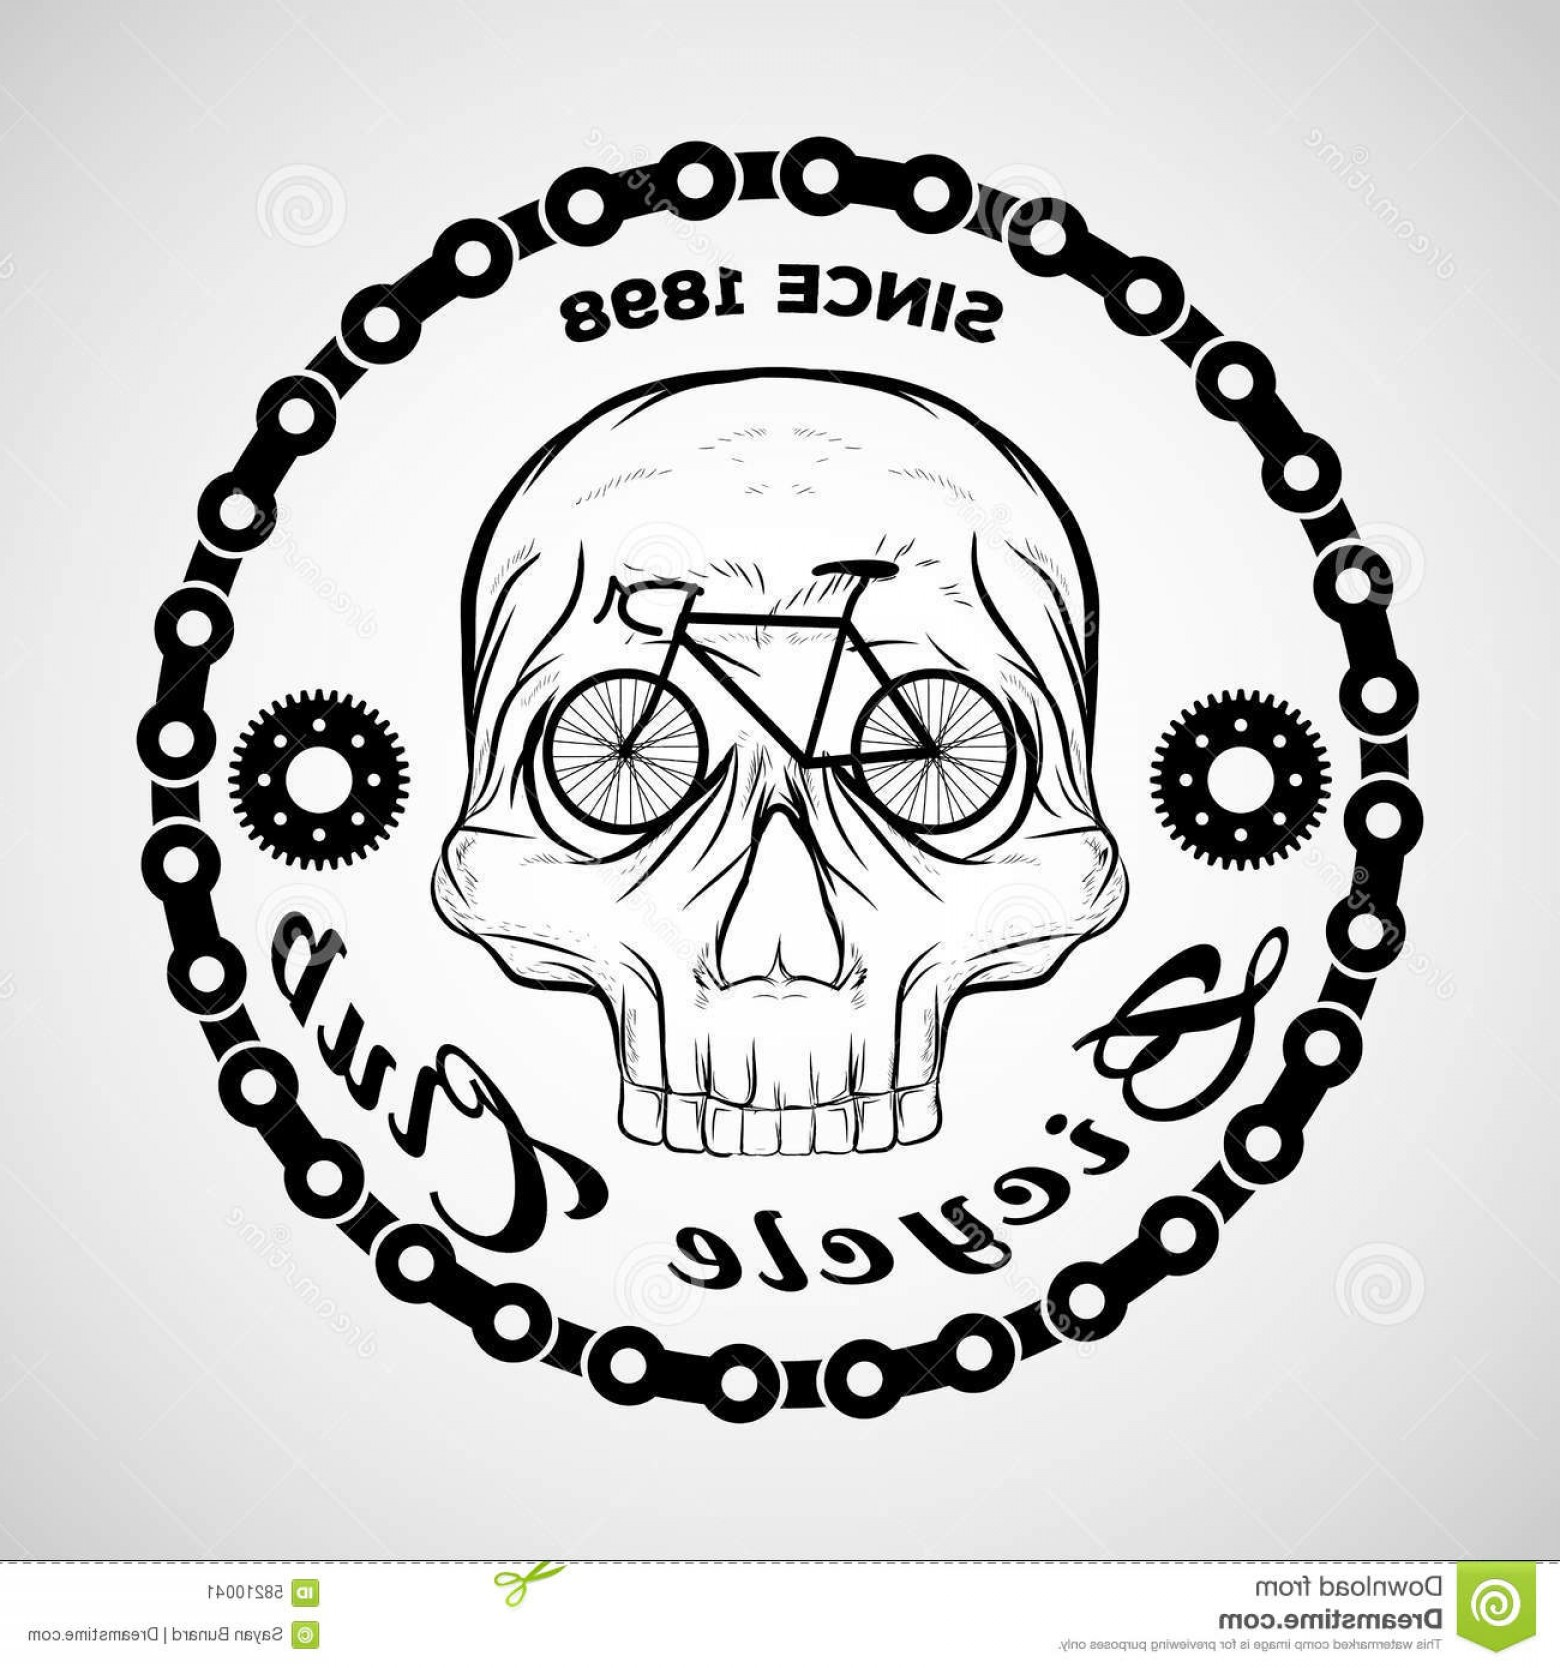 Harley-Davidson Skull Logo Vector: Harley Davidson Skull Best Of Skull Logo Bicycle Club Logo Stock Vector Image